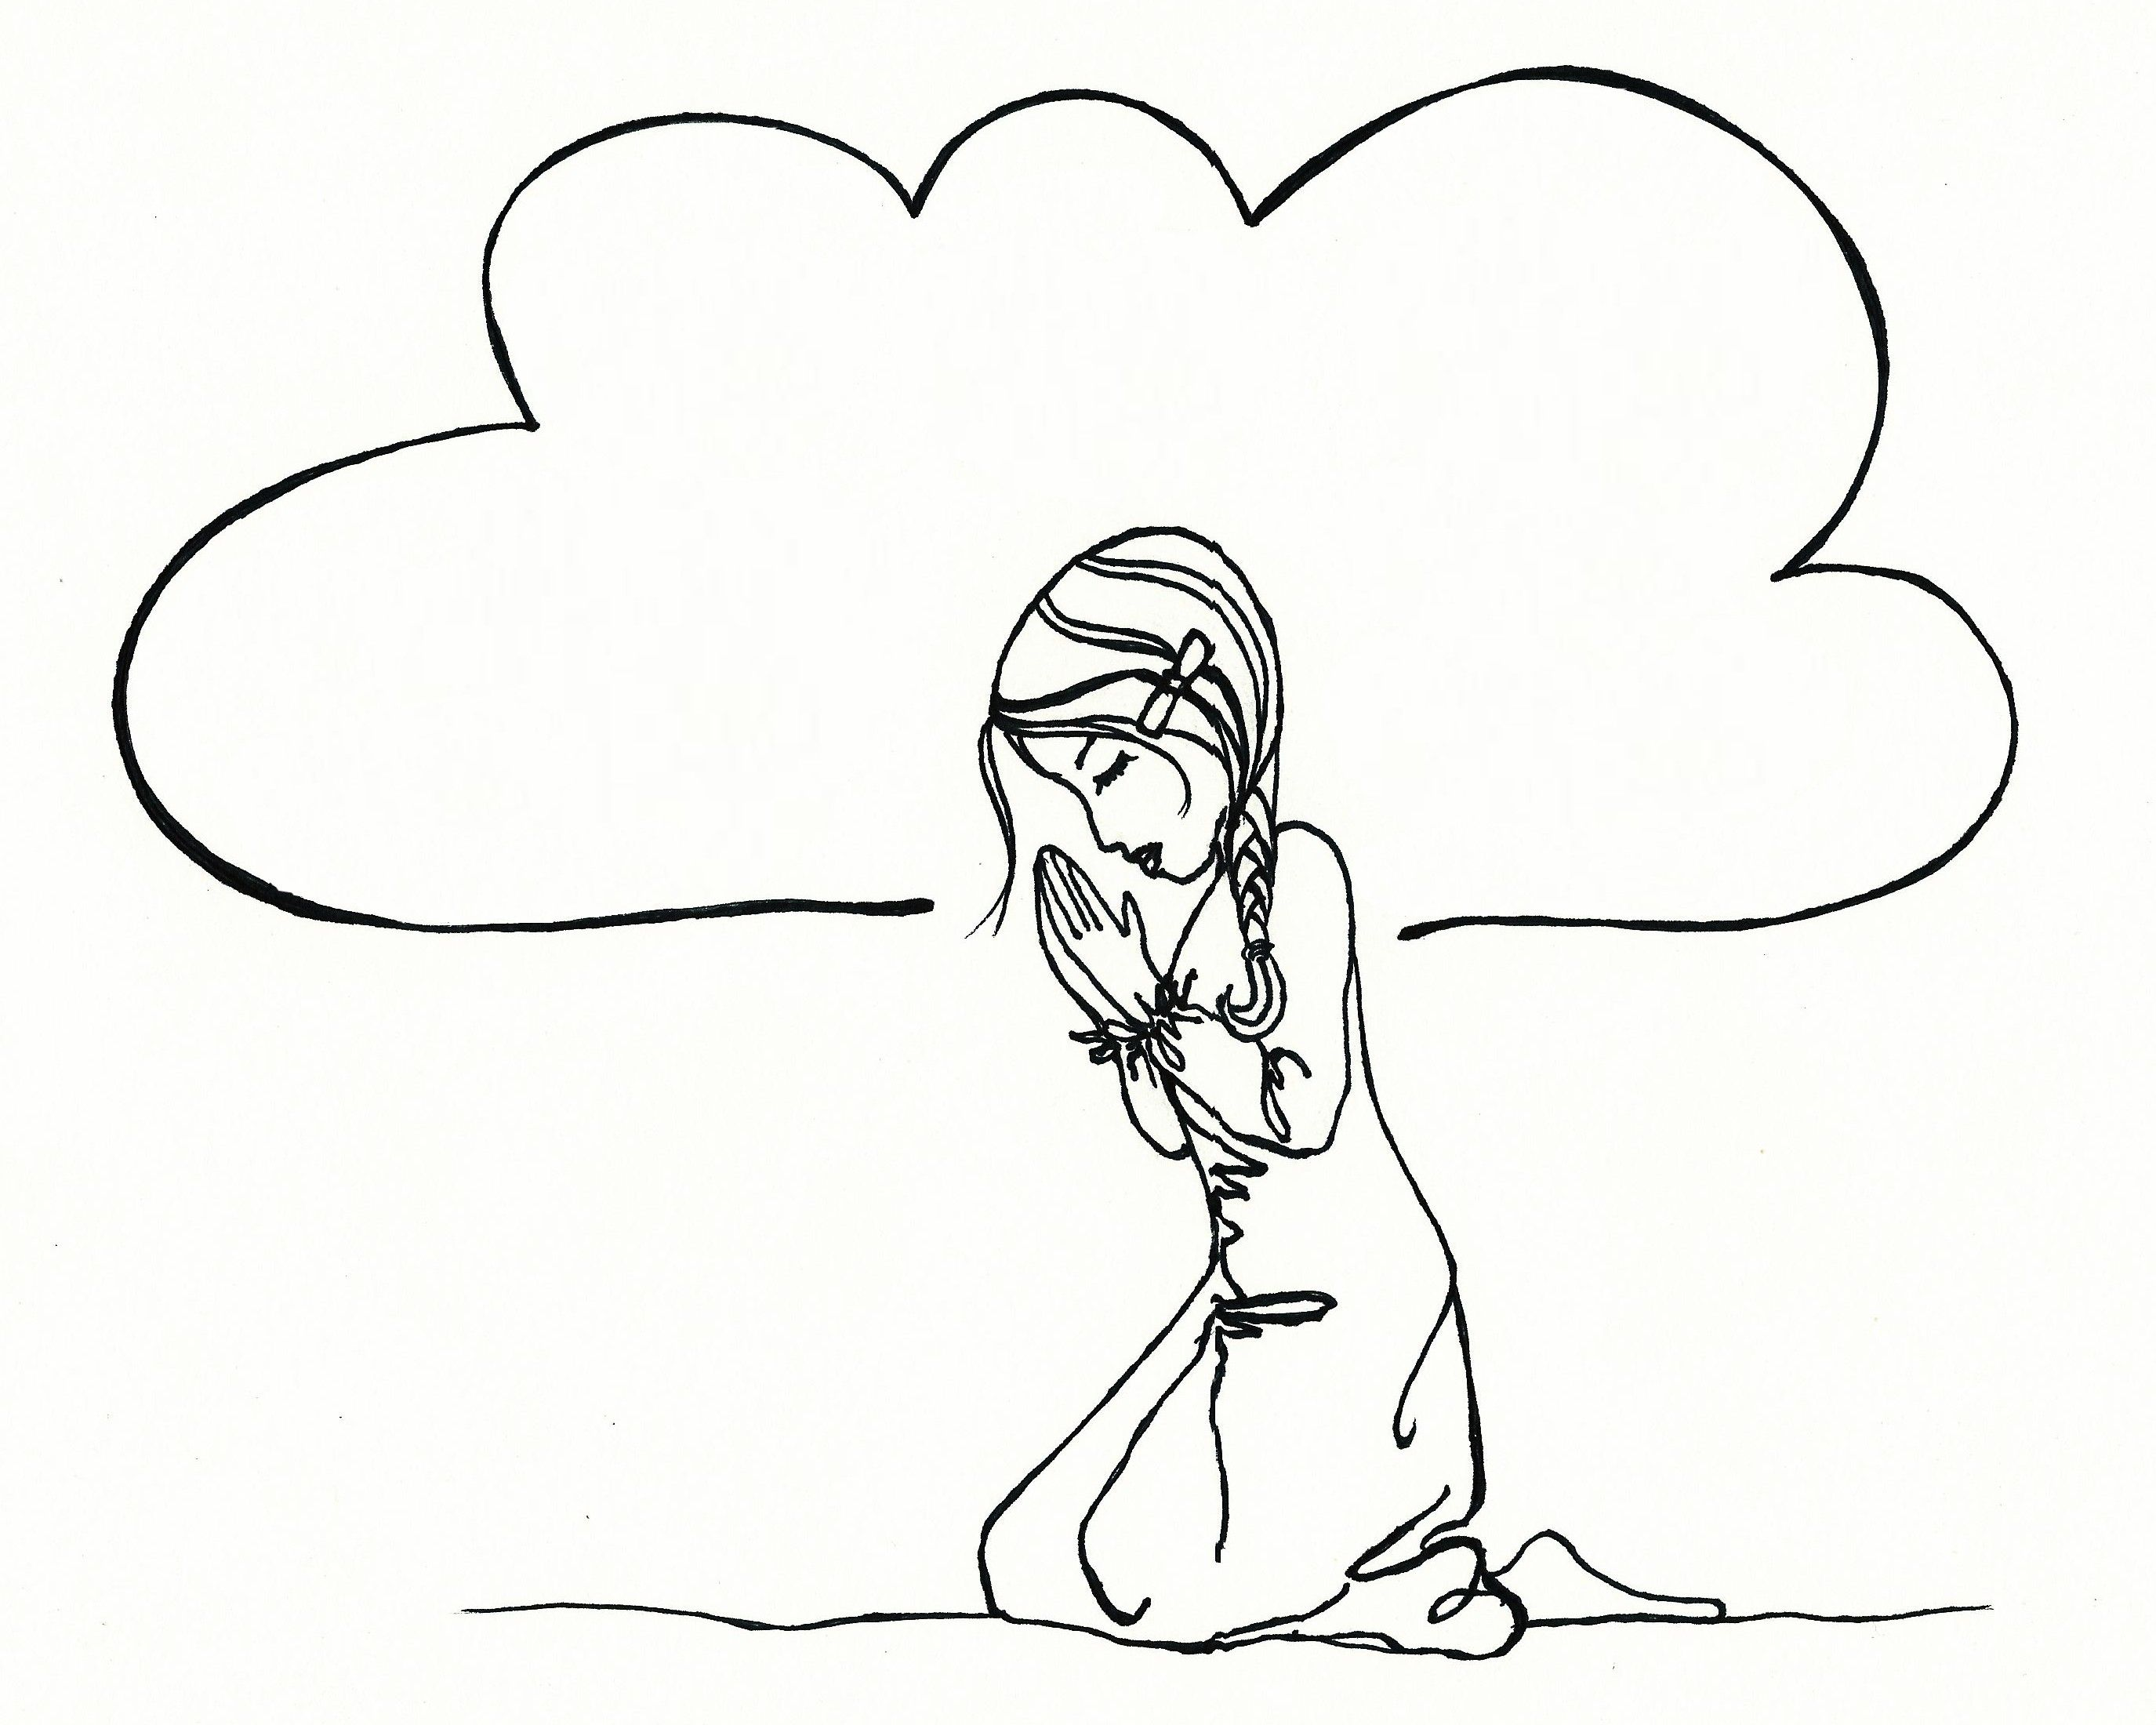 Childrens praying hands coloring page - Prayer Coloring Page Print Draw In The Prayer Bubbles Things You Pray For